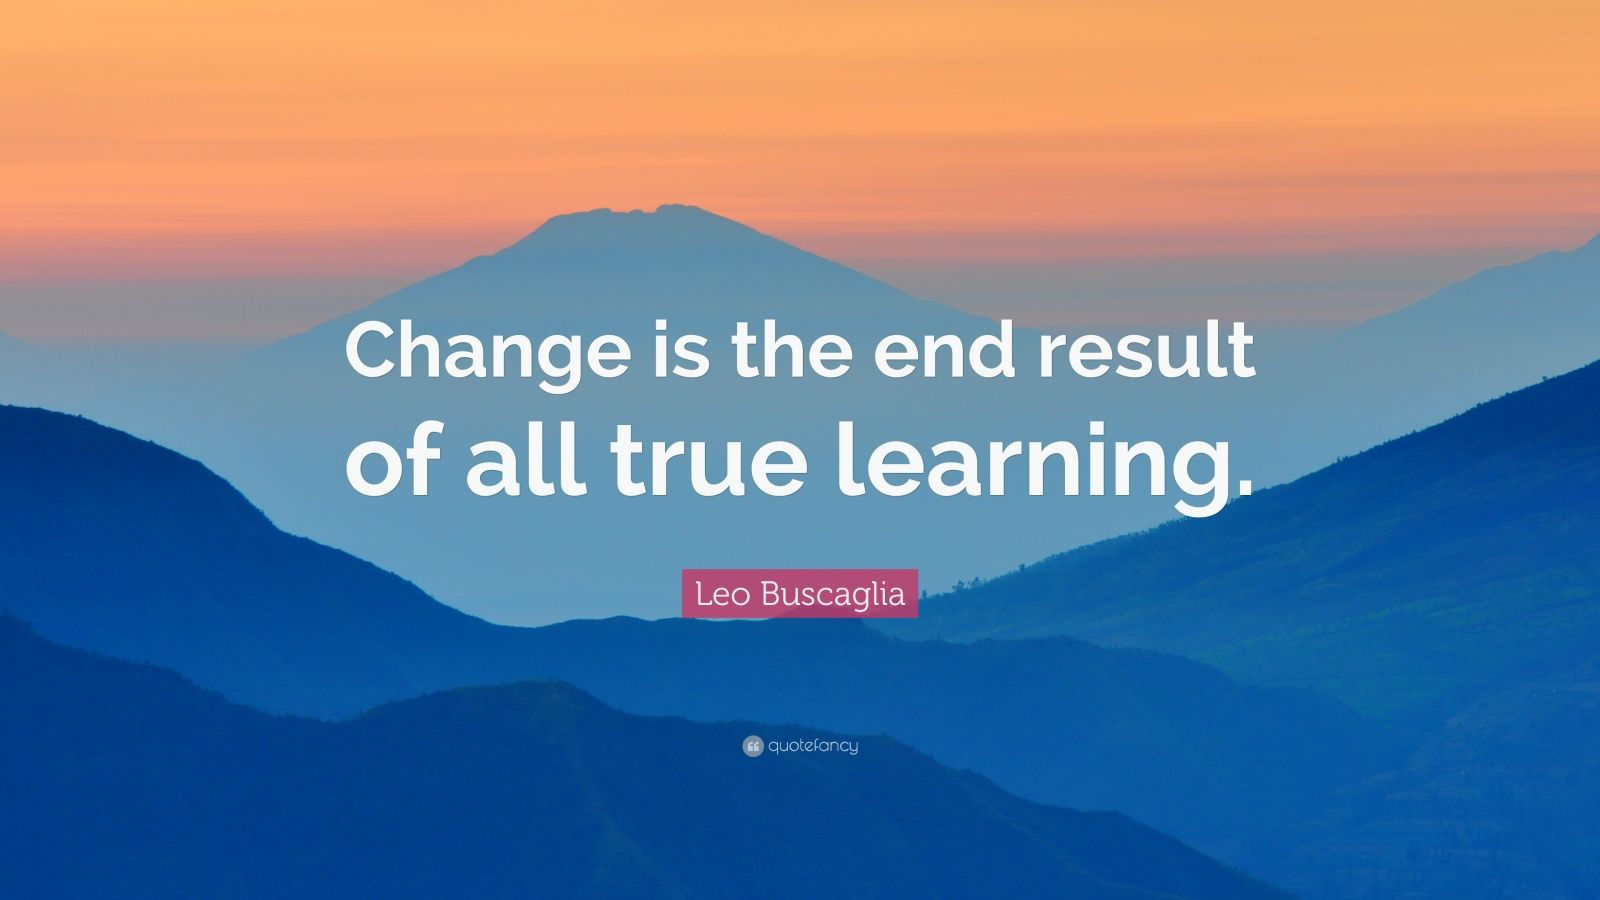 Leo Buscaglia Quotes Change